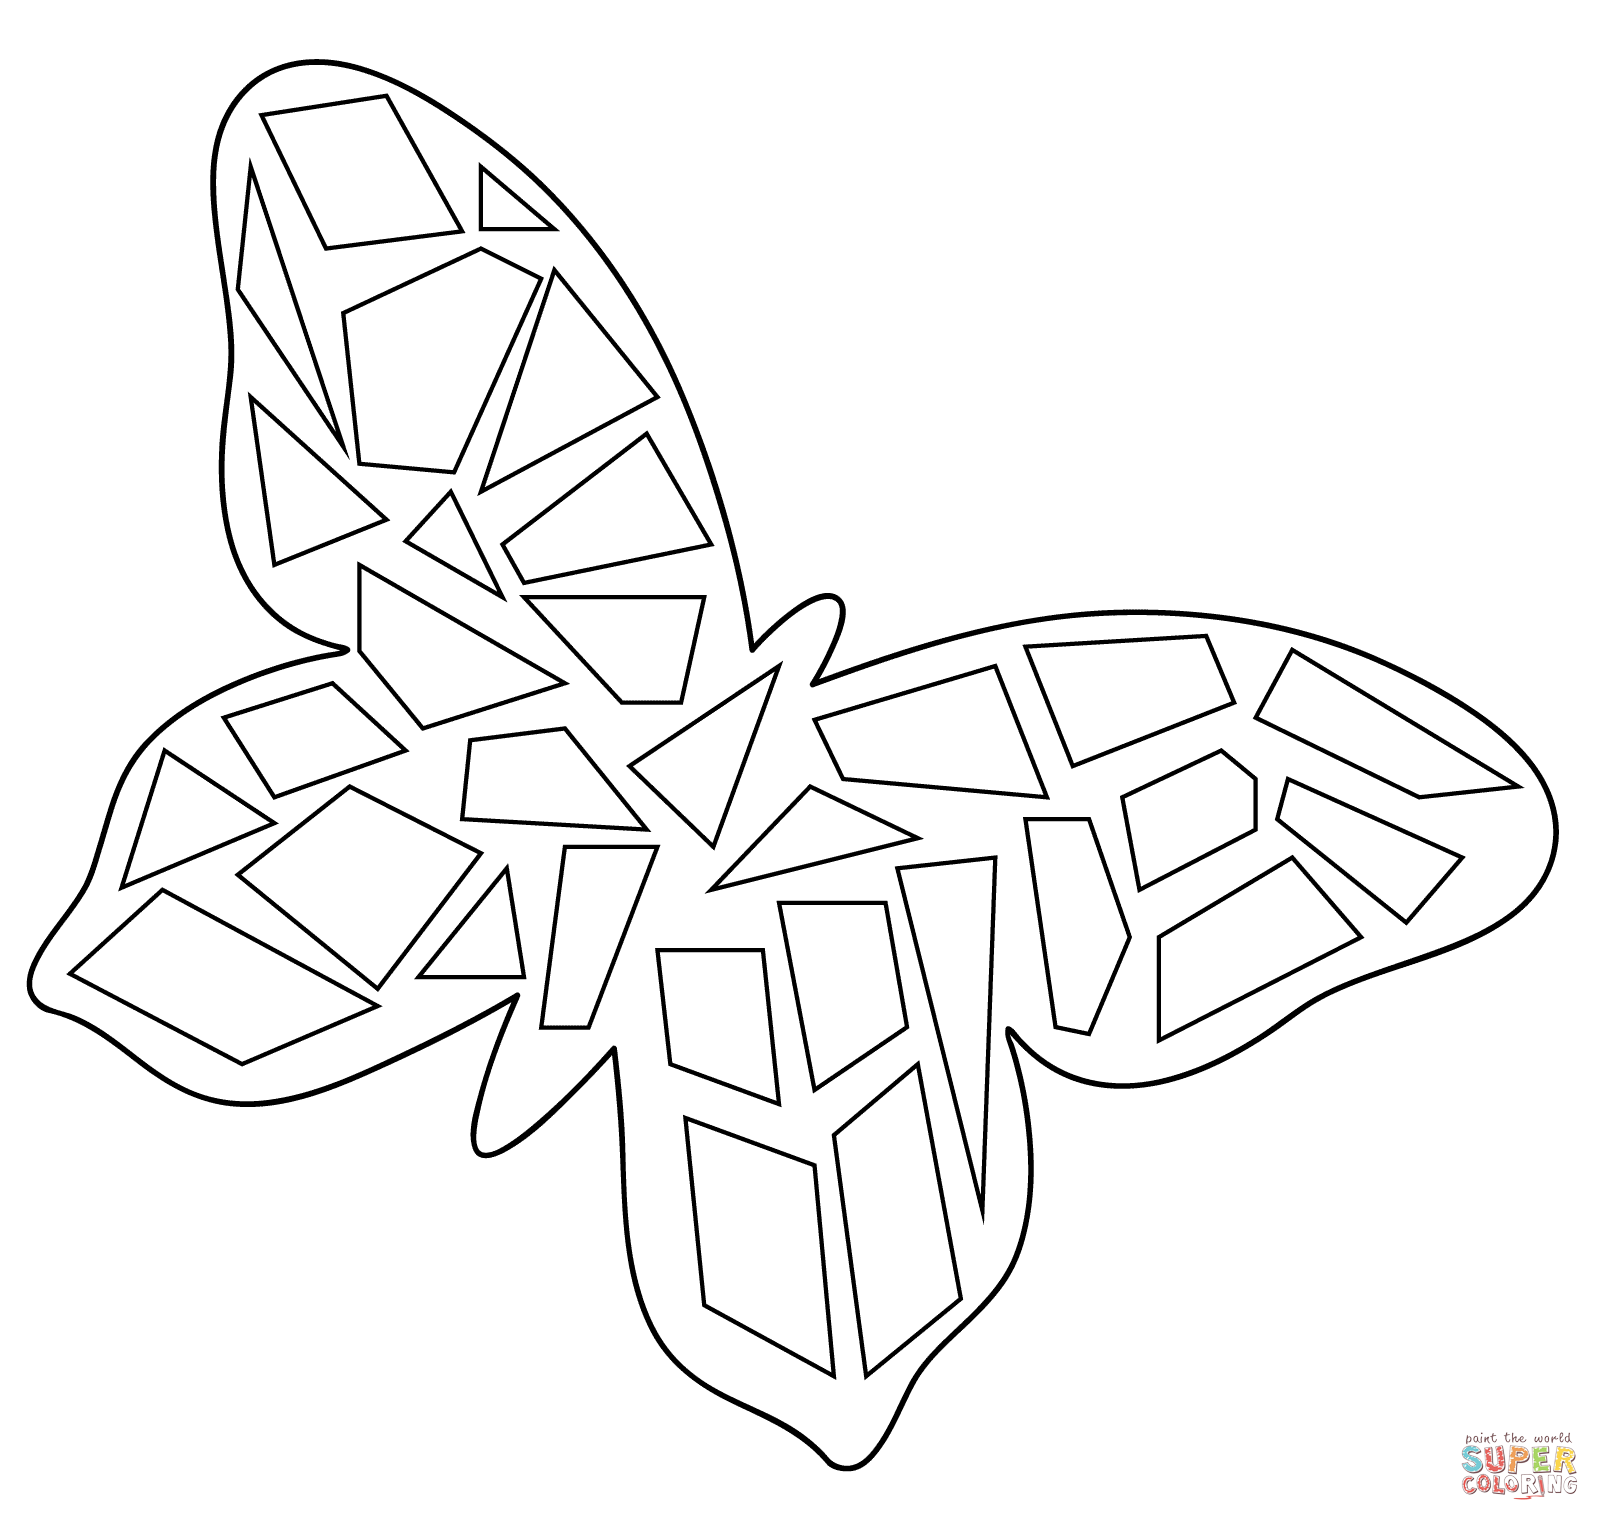 butterfly mosaic coloring page mosaic butterfly digital adult coloring page page mosaic coloring butterfly